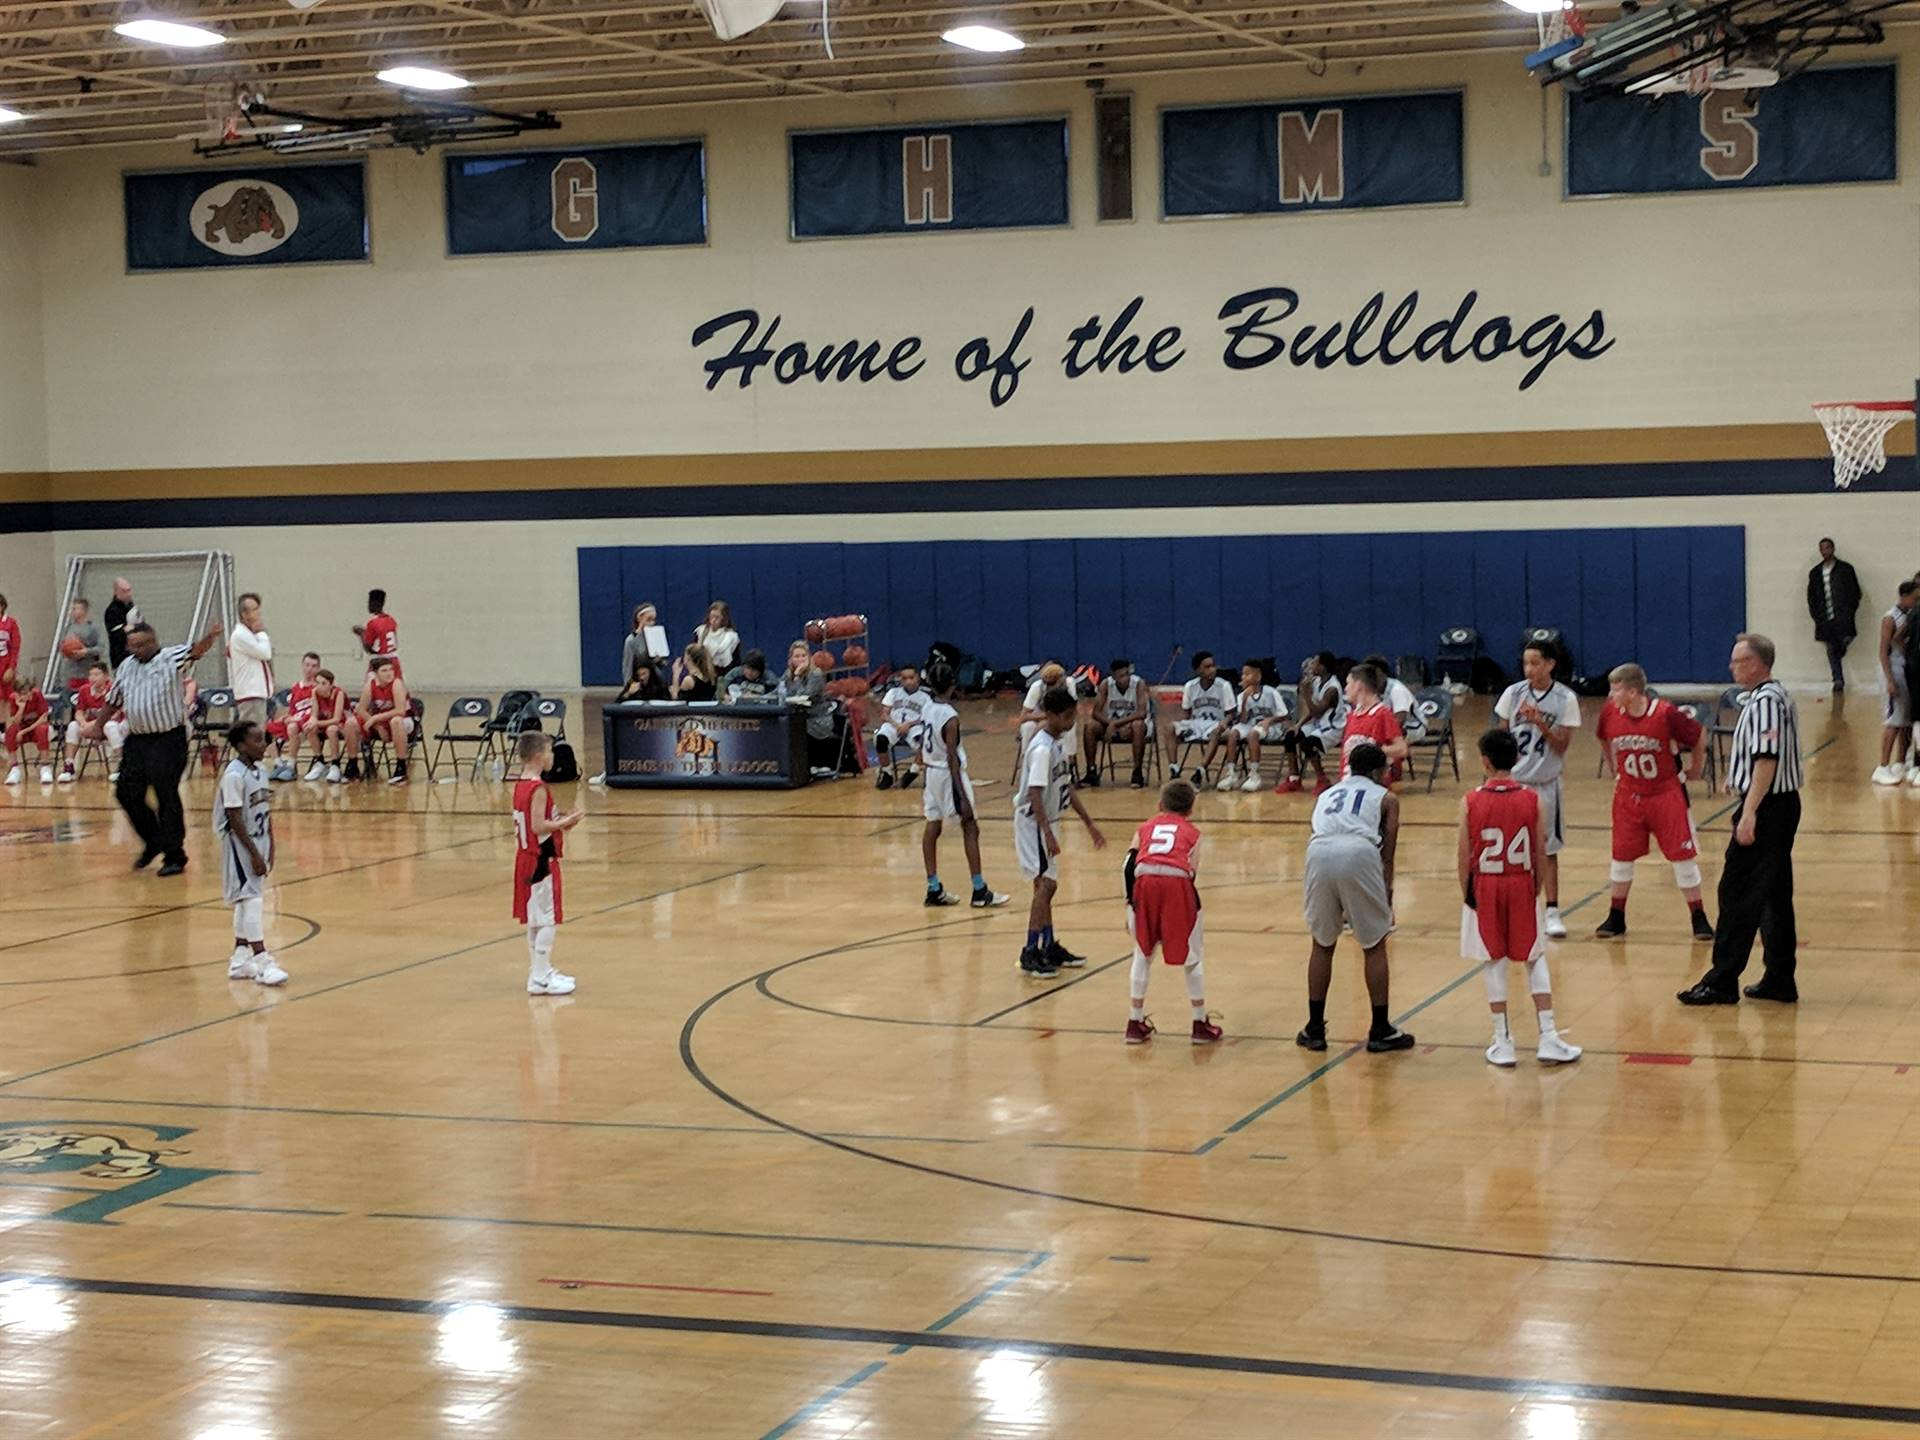 on the court basketball game